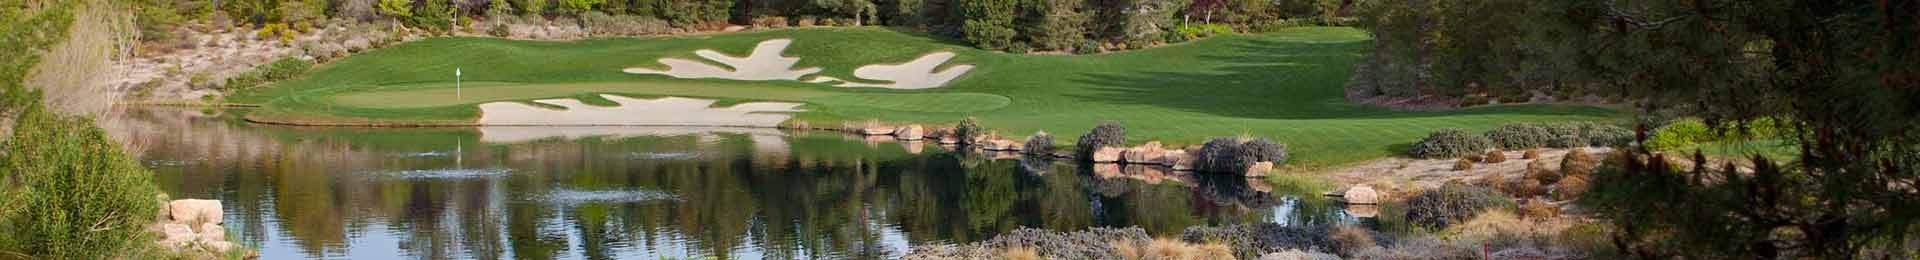 Southern Highlands Hole 8